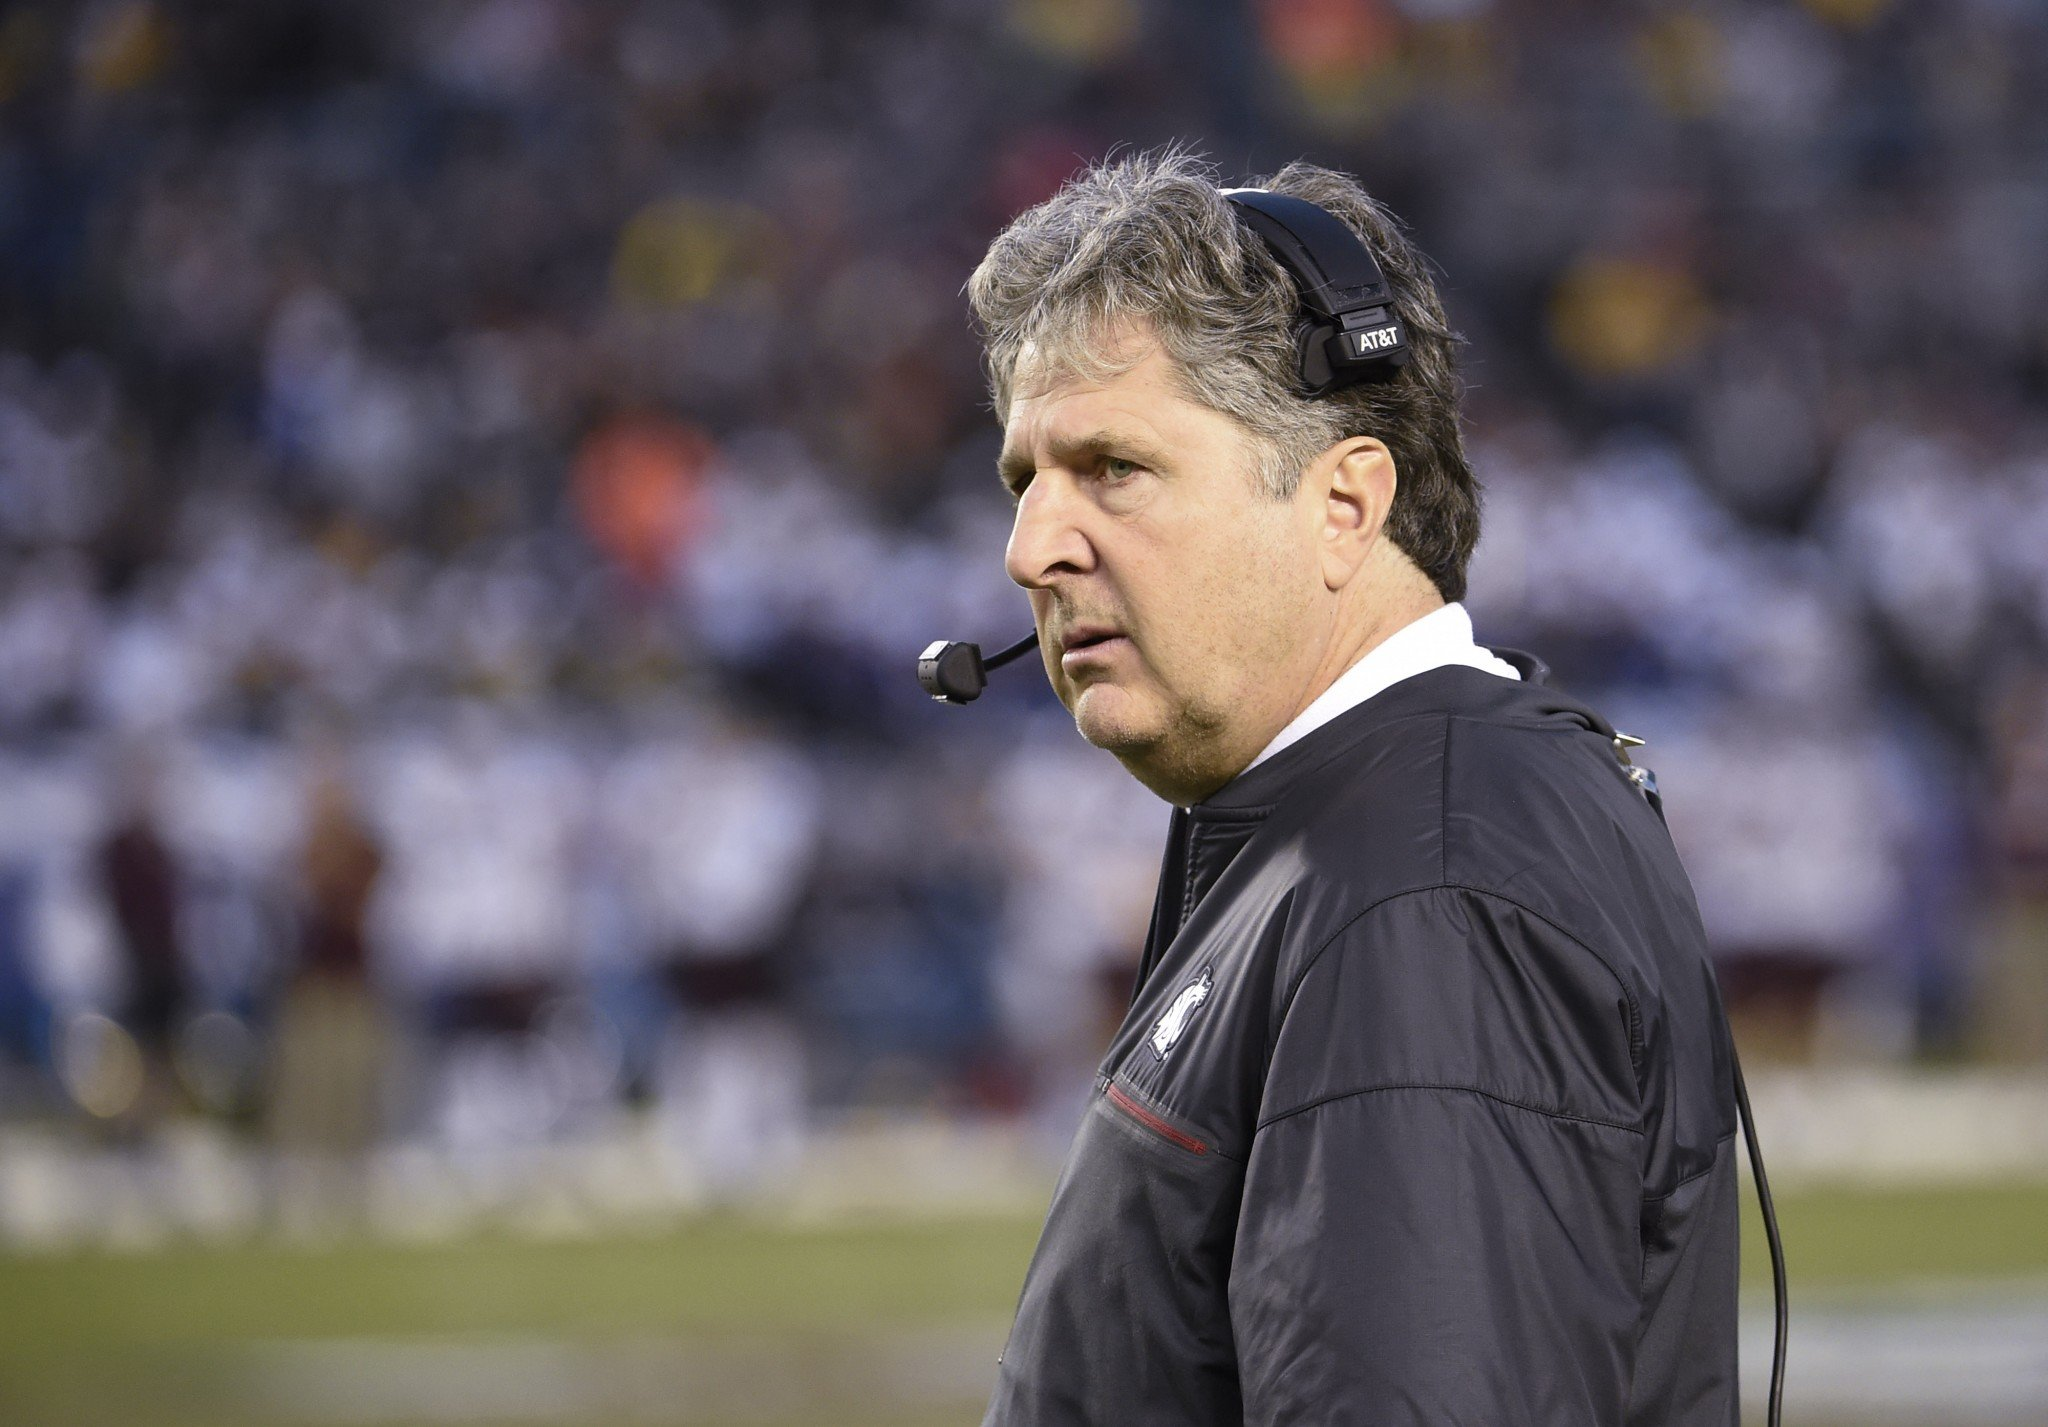 Washington State coach Mike Leach has some thoughts about SEC offenses. (AP Photo/Denis Poroy)